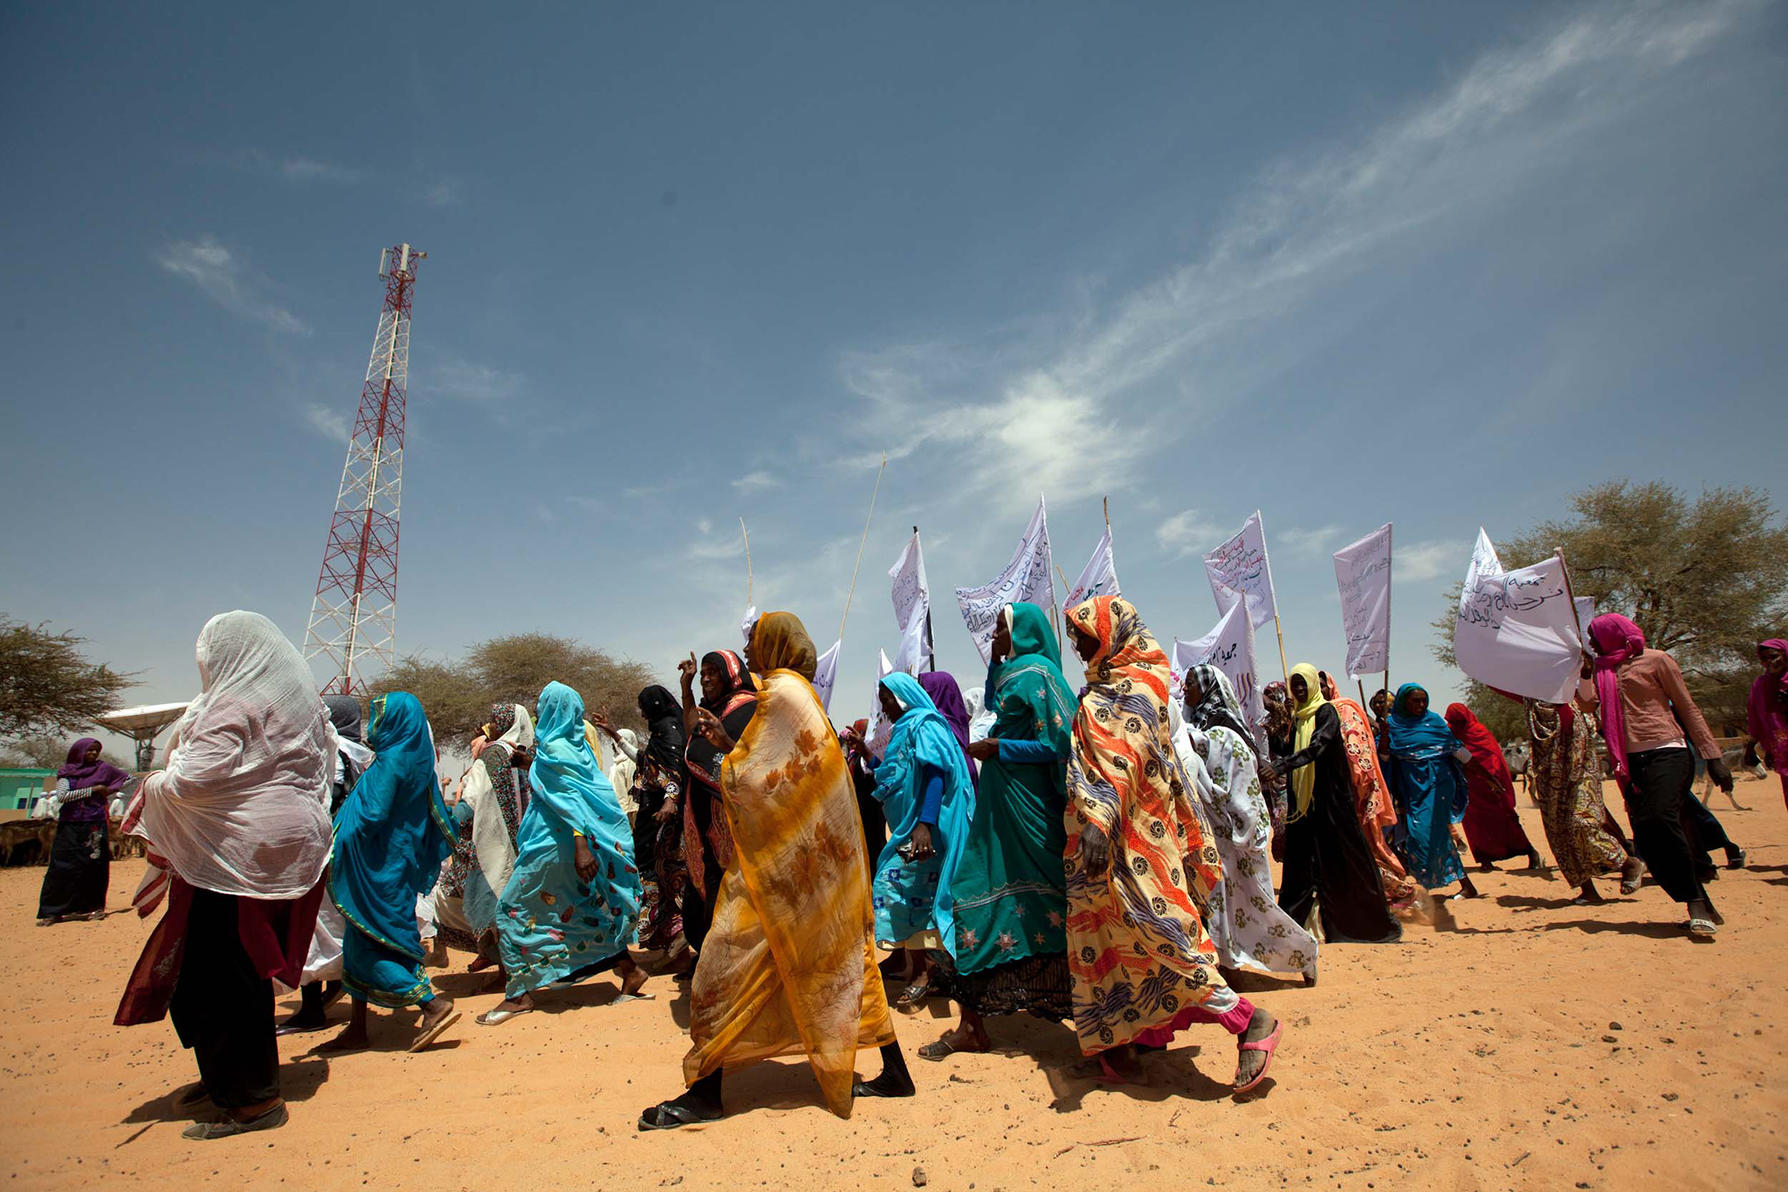 Women march in Al Koma village, North Darfur. Photo courtesy of Albert González Farran, UNAMID.